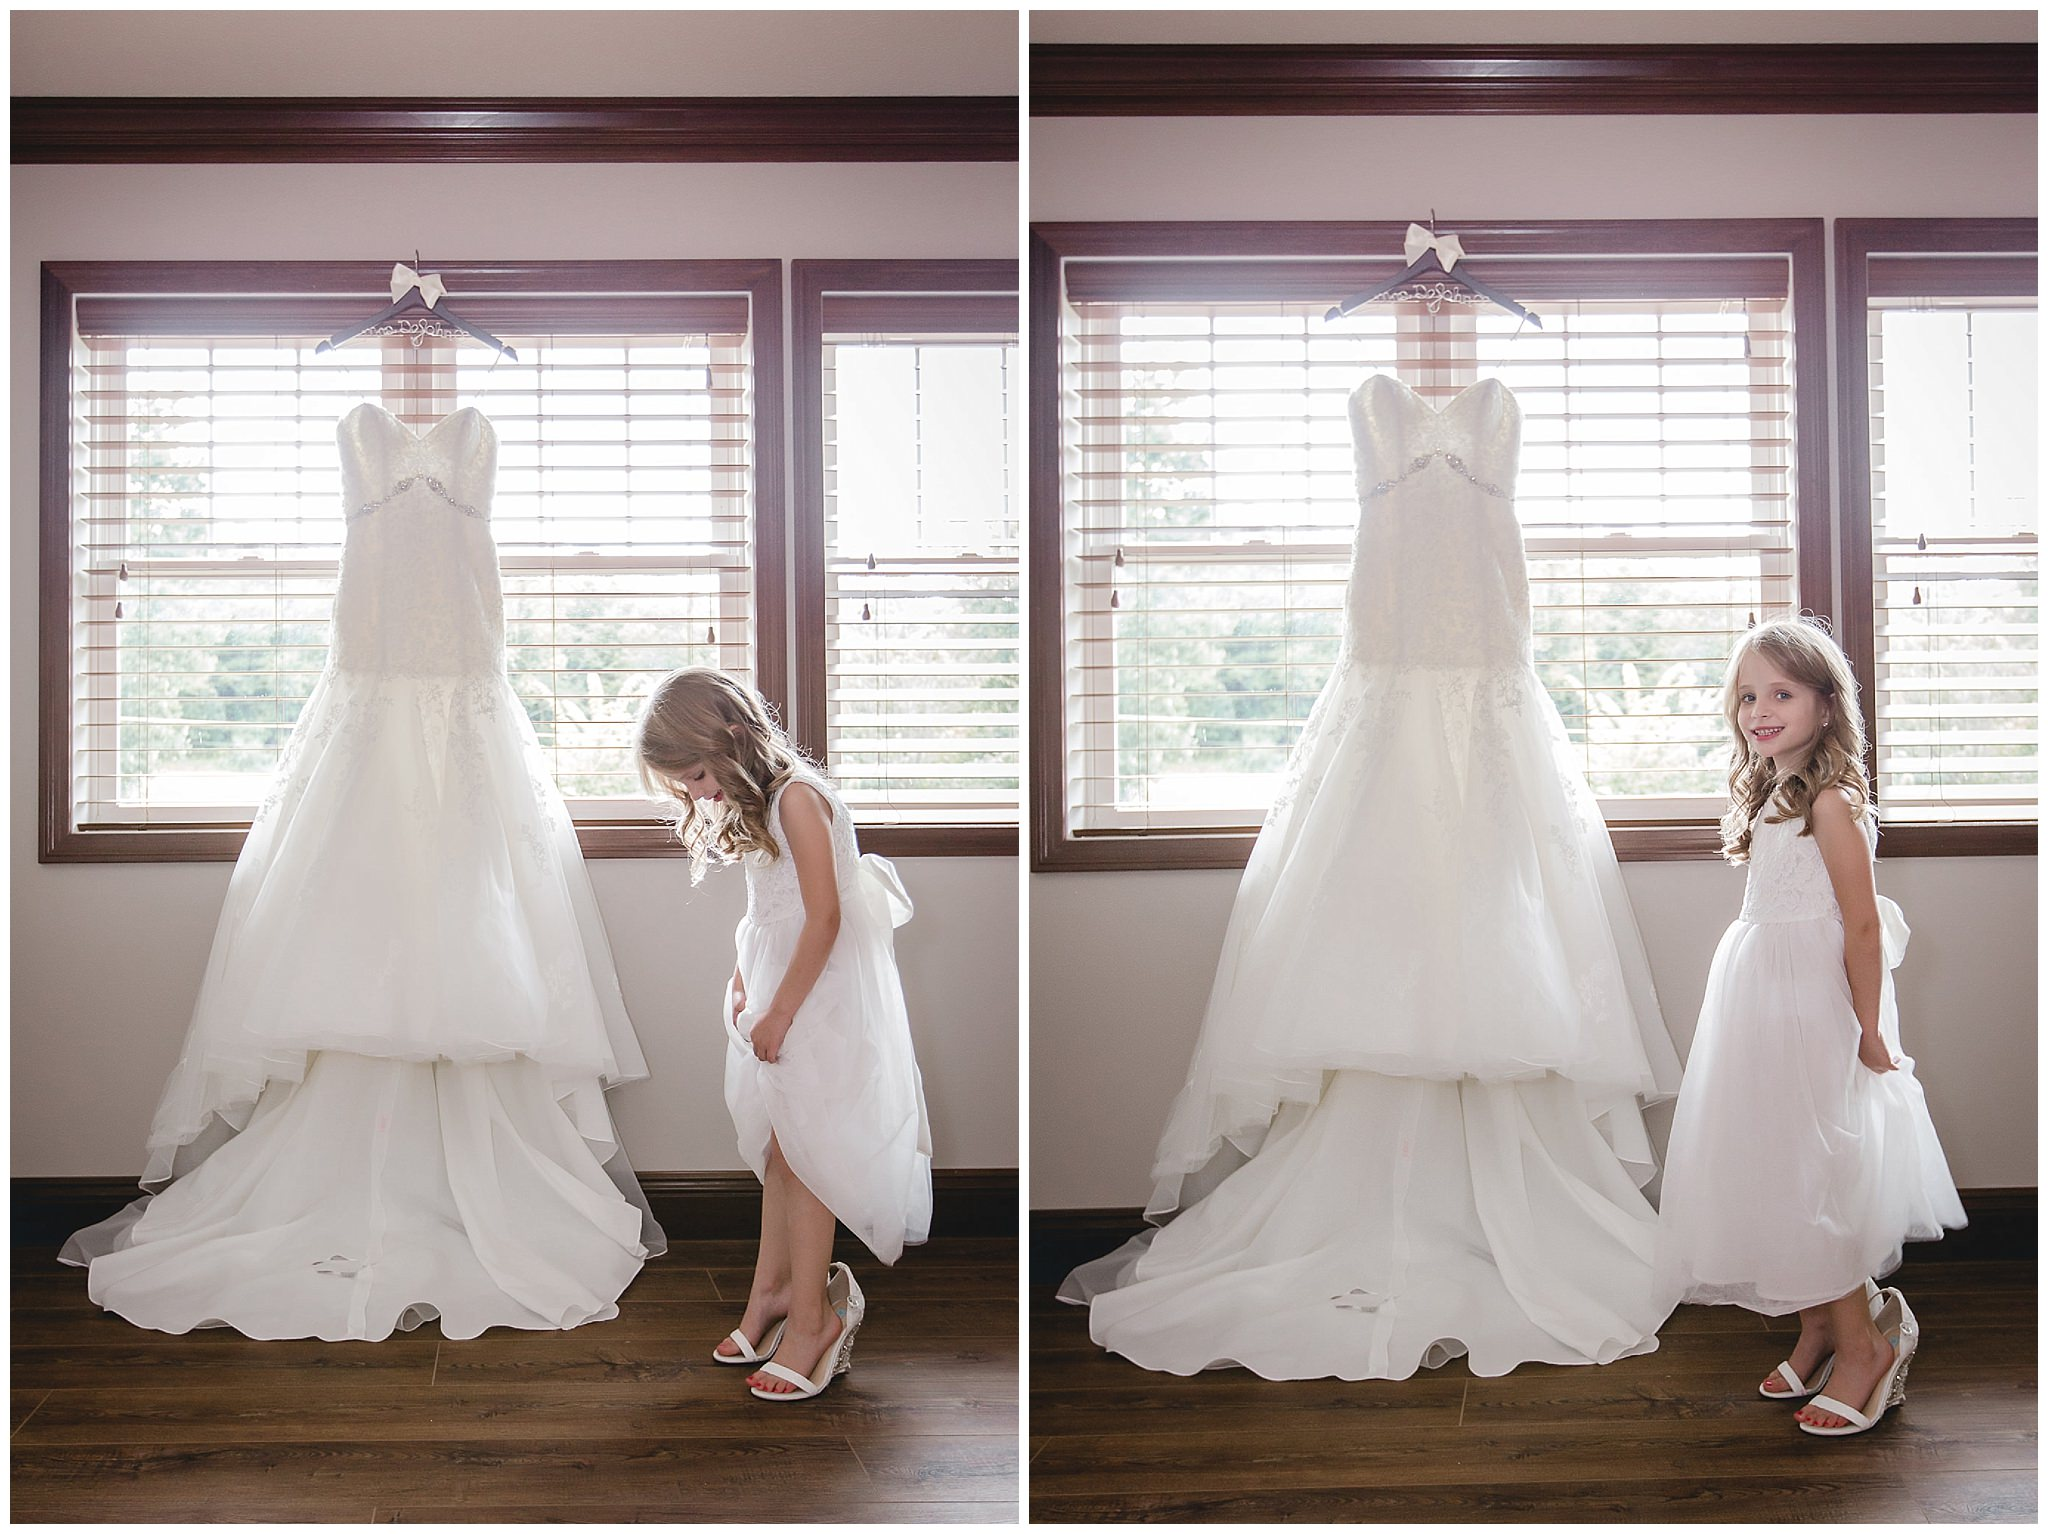 Flower girl tries on the bride's shoes next to her Alfred Angelo wedding gown